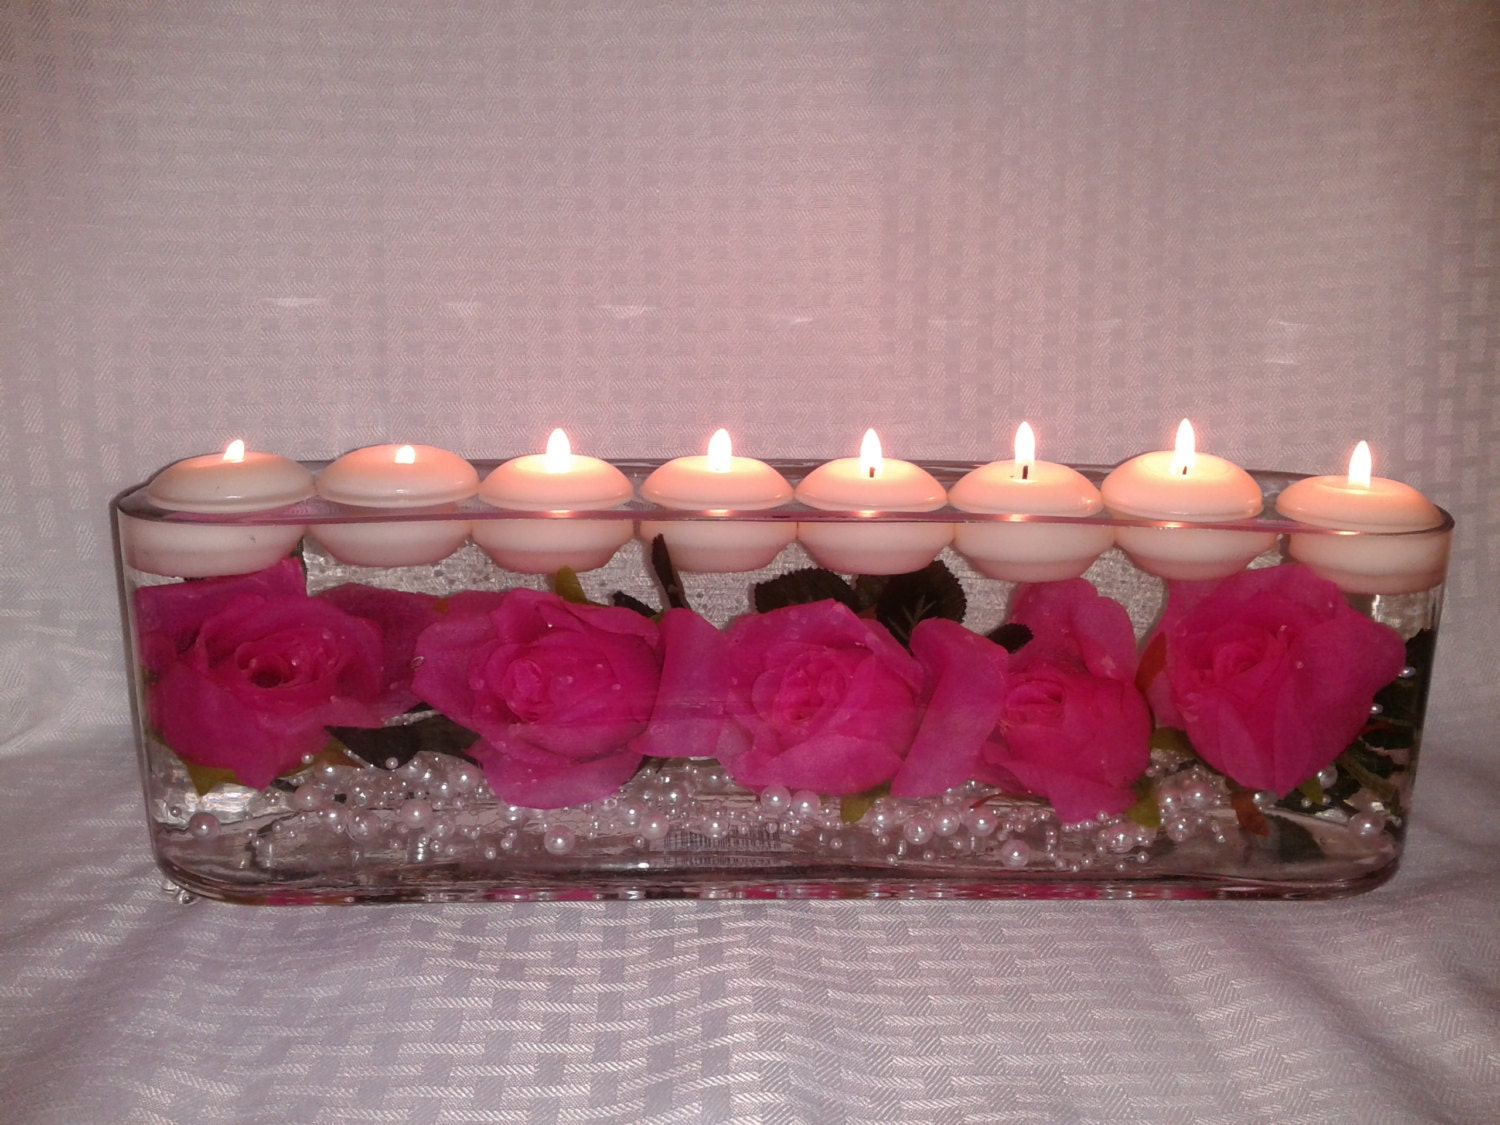 Roses and pearls floating in a long vase with candles